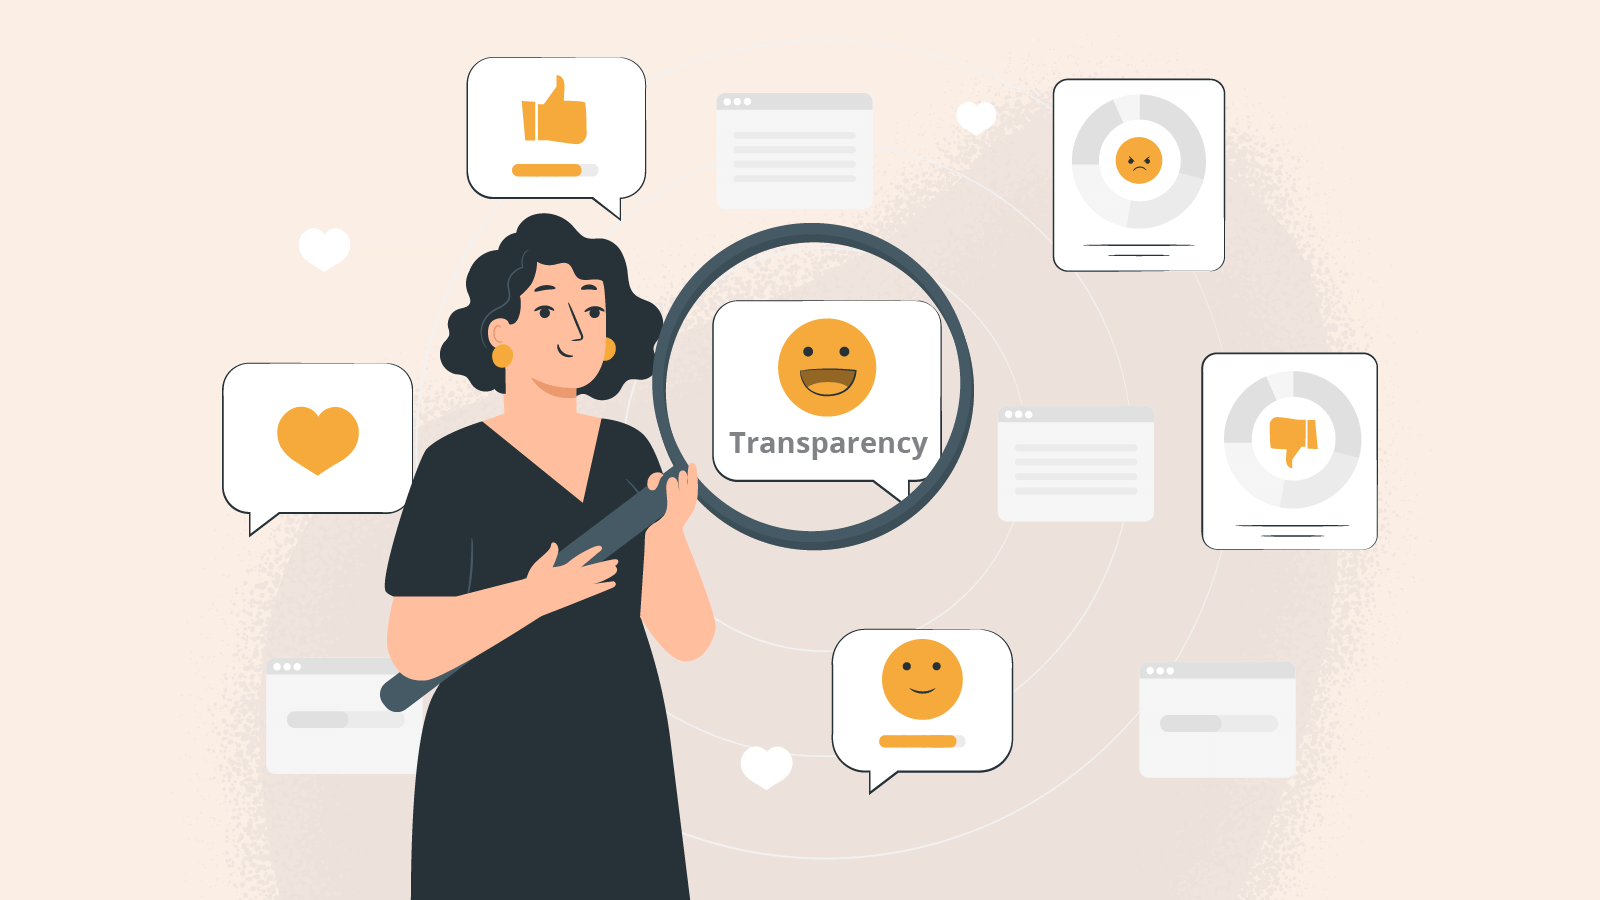 Transparency and reliability